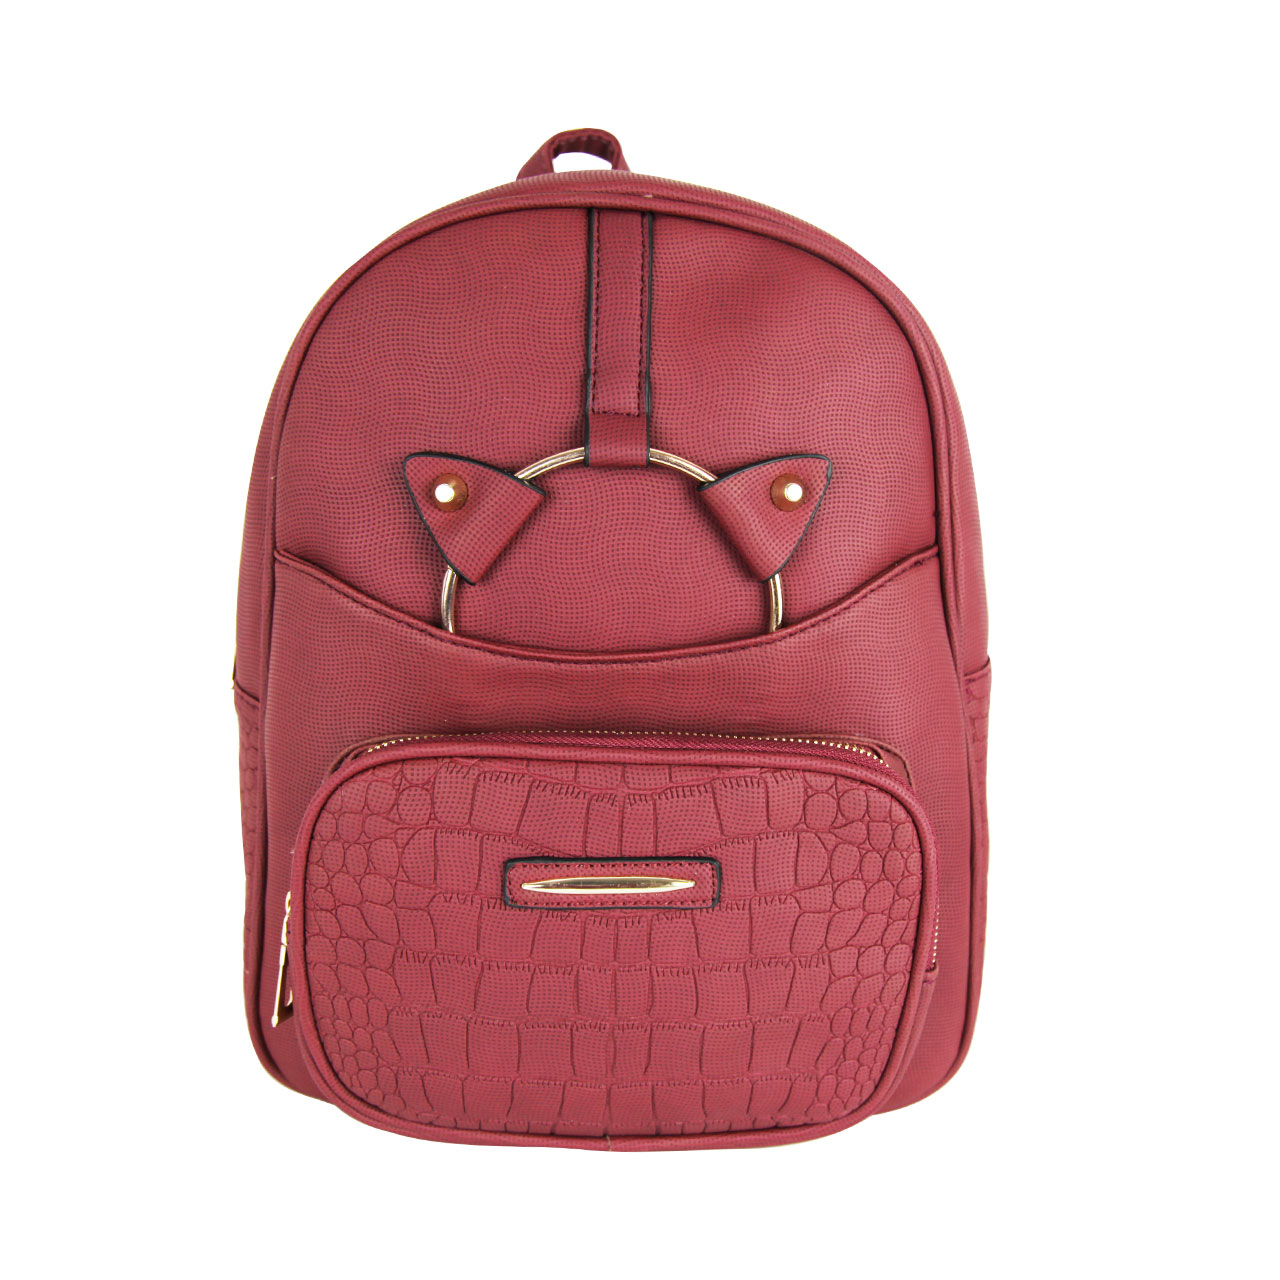 Women's Leather Maroon Front Pocket Backpack